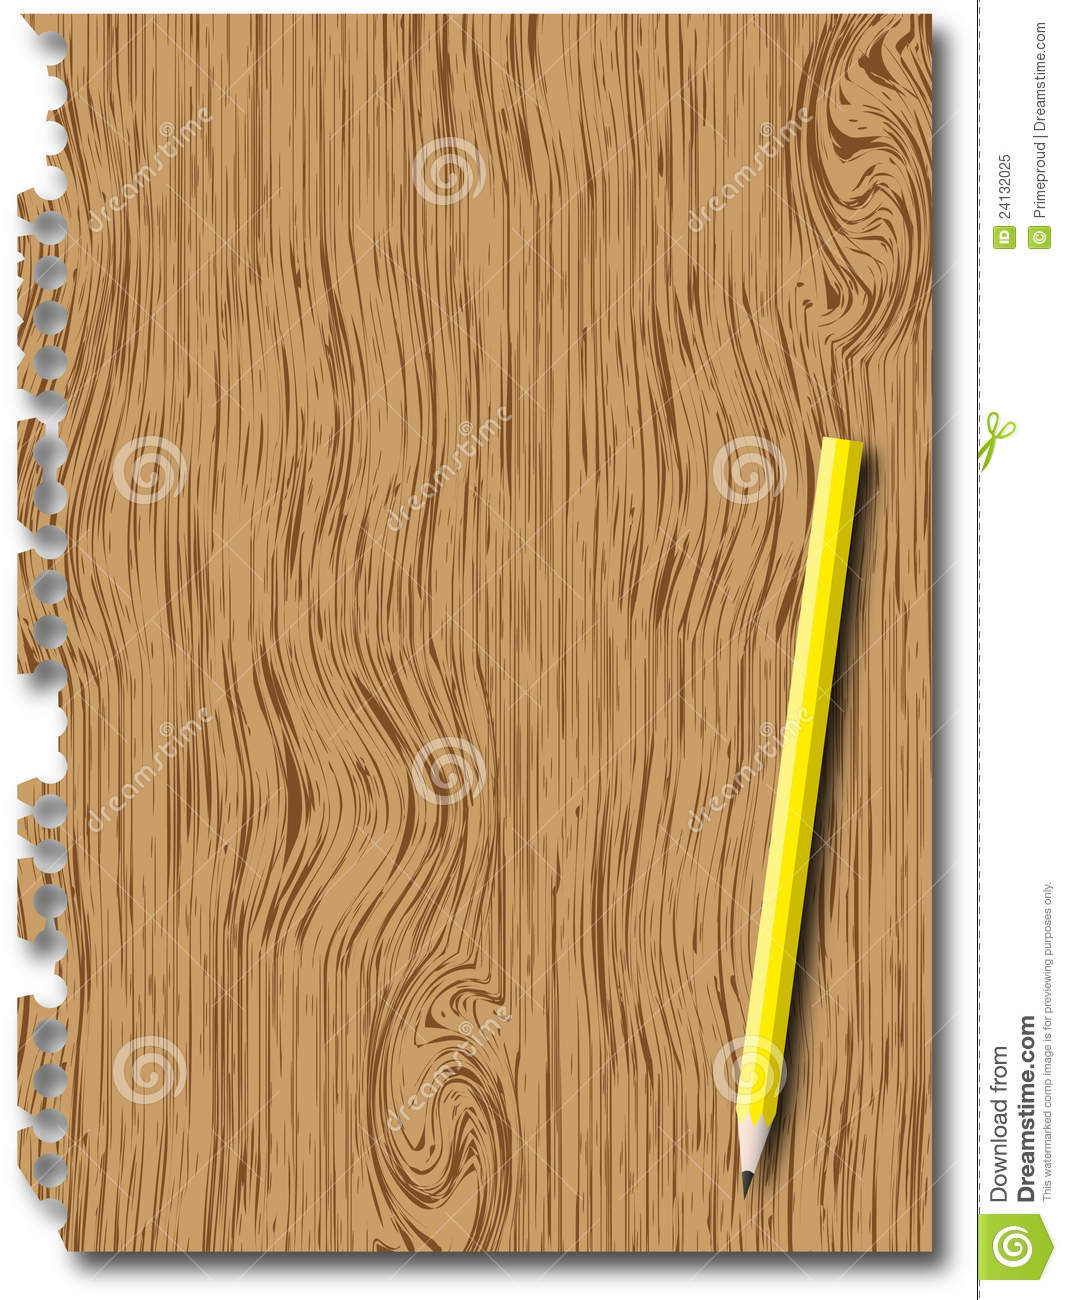 Wooden Texture And Pencil Royalty Free Stock Photo - Image ...